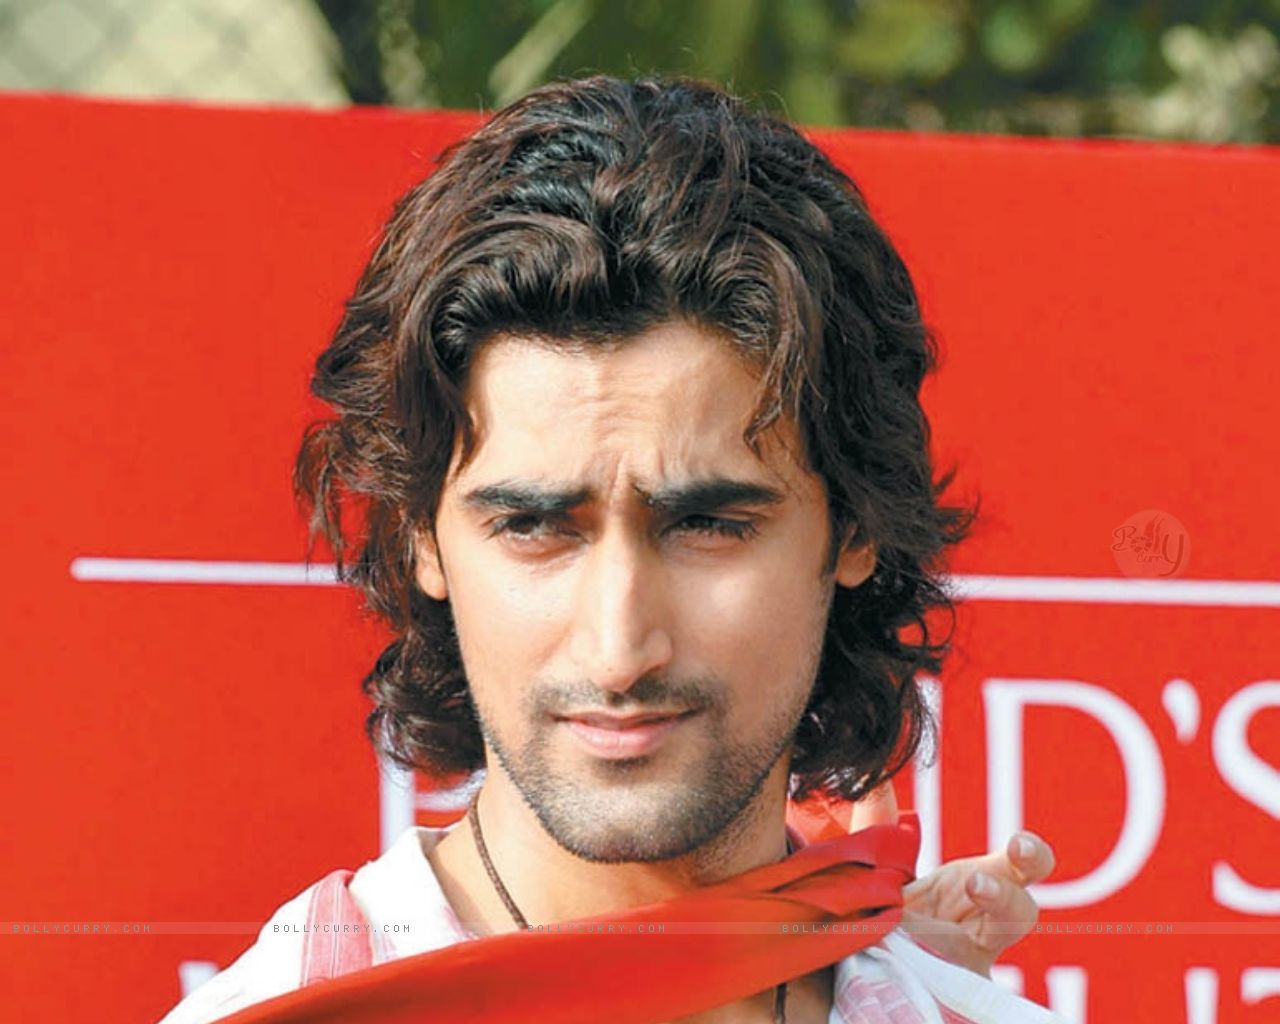 kunal kapoor parentskunal kapoor wiki, kunal kapoor movies, kunal kapoor height, kunal kapoor and wife, kunal kapoor biography, kunal kapoor instagram, kunal kapoor wedding, kunal kapoor chef, kunal kapoor actor, kunal kapoor parents, kunal kapoor and naina bachchan wedding, kunal kapoor and naina bachchan, kunal kapoor father, kunal kapoor family, kunal kapoor sheena sippy, kunal kapoor shashi, kunal kapoor wikipedia, kunal kapoor marriage, kunal kapoor wedding pics, kunal kapoor and naina bachchan engagement